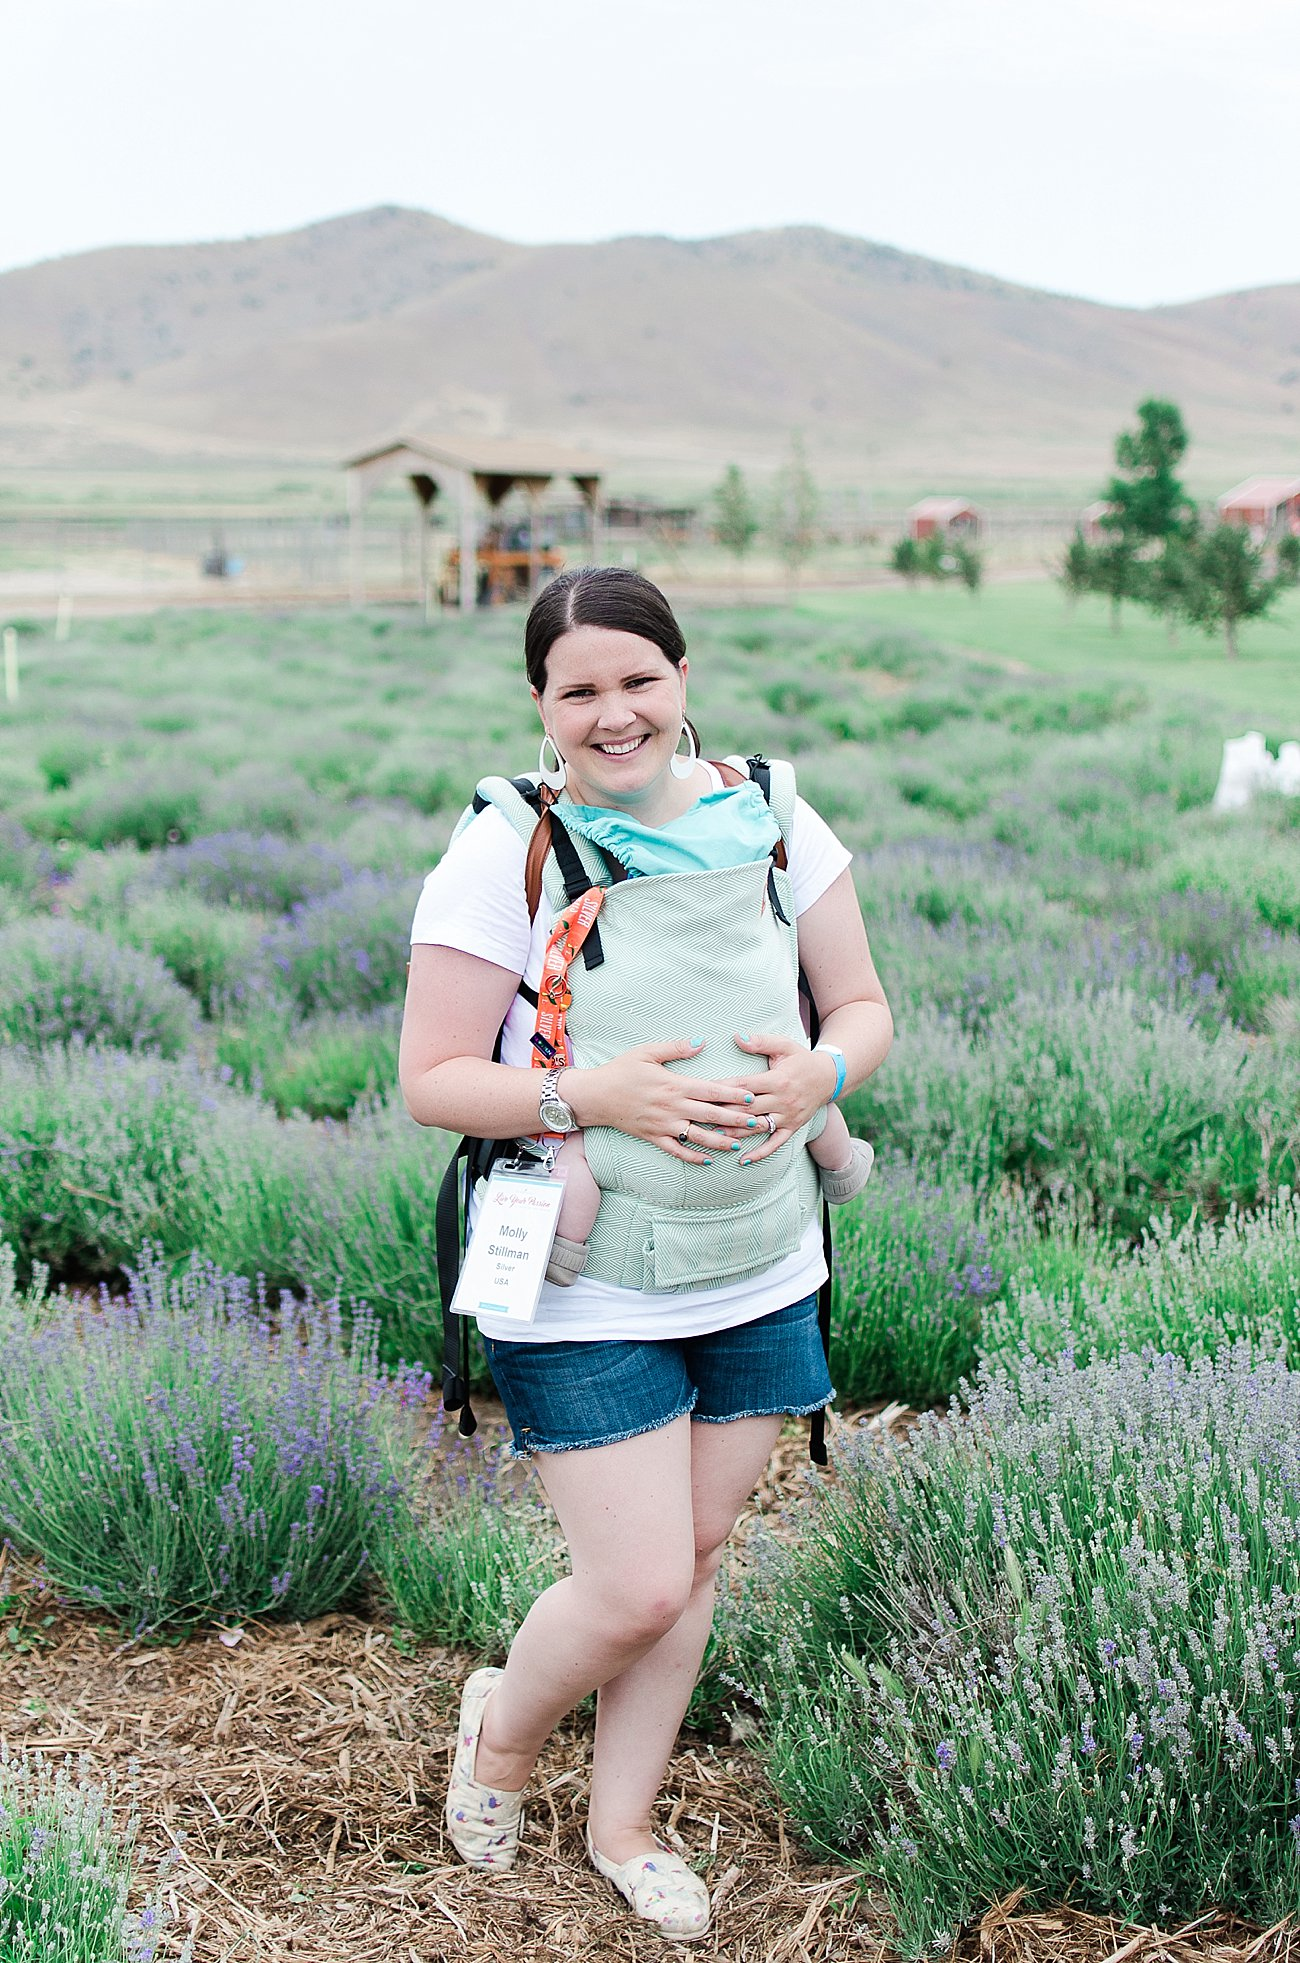 Young Living Lavender Farm, Mona, Utah (51)